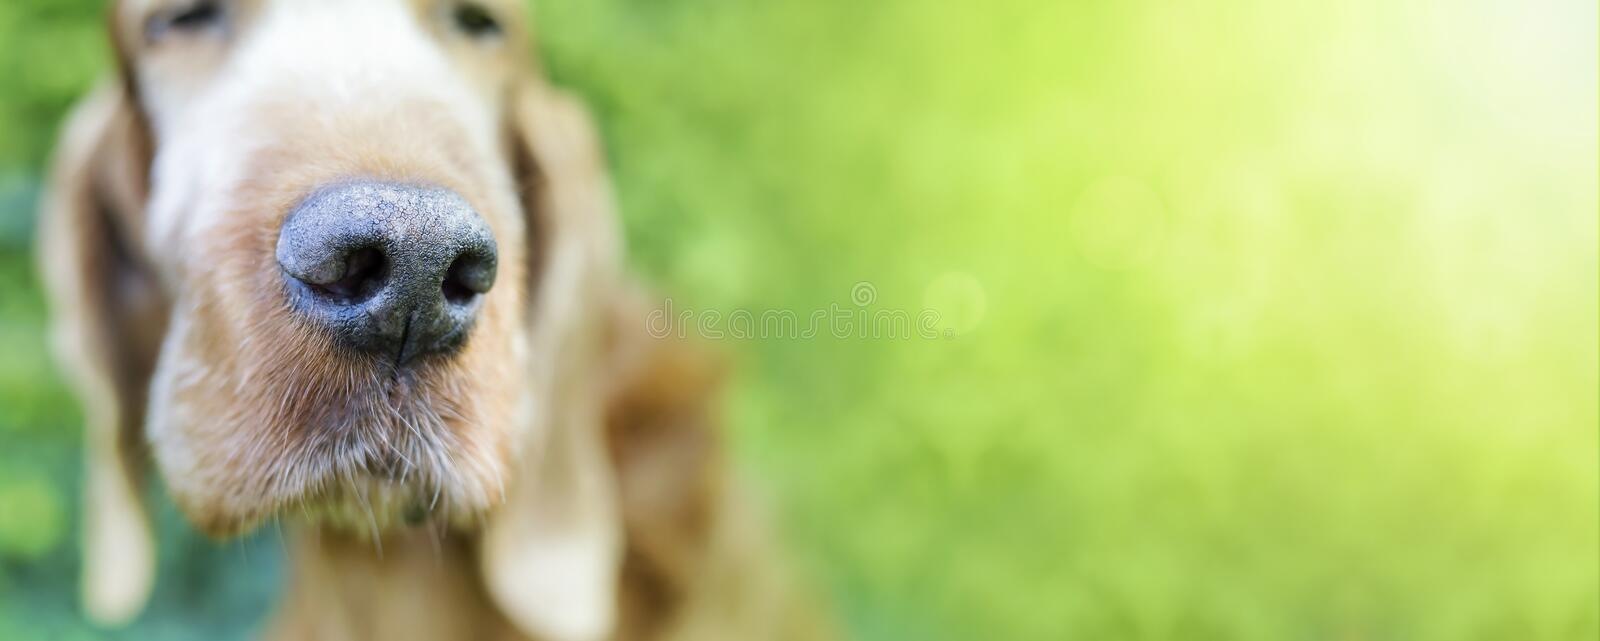 Cute funny dog royalty free stock images